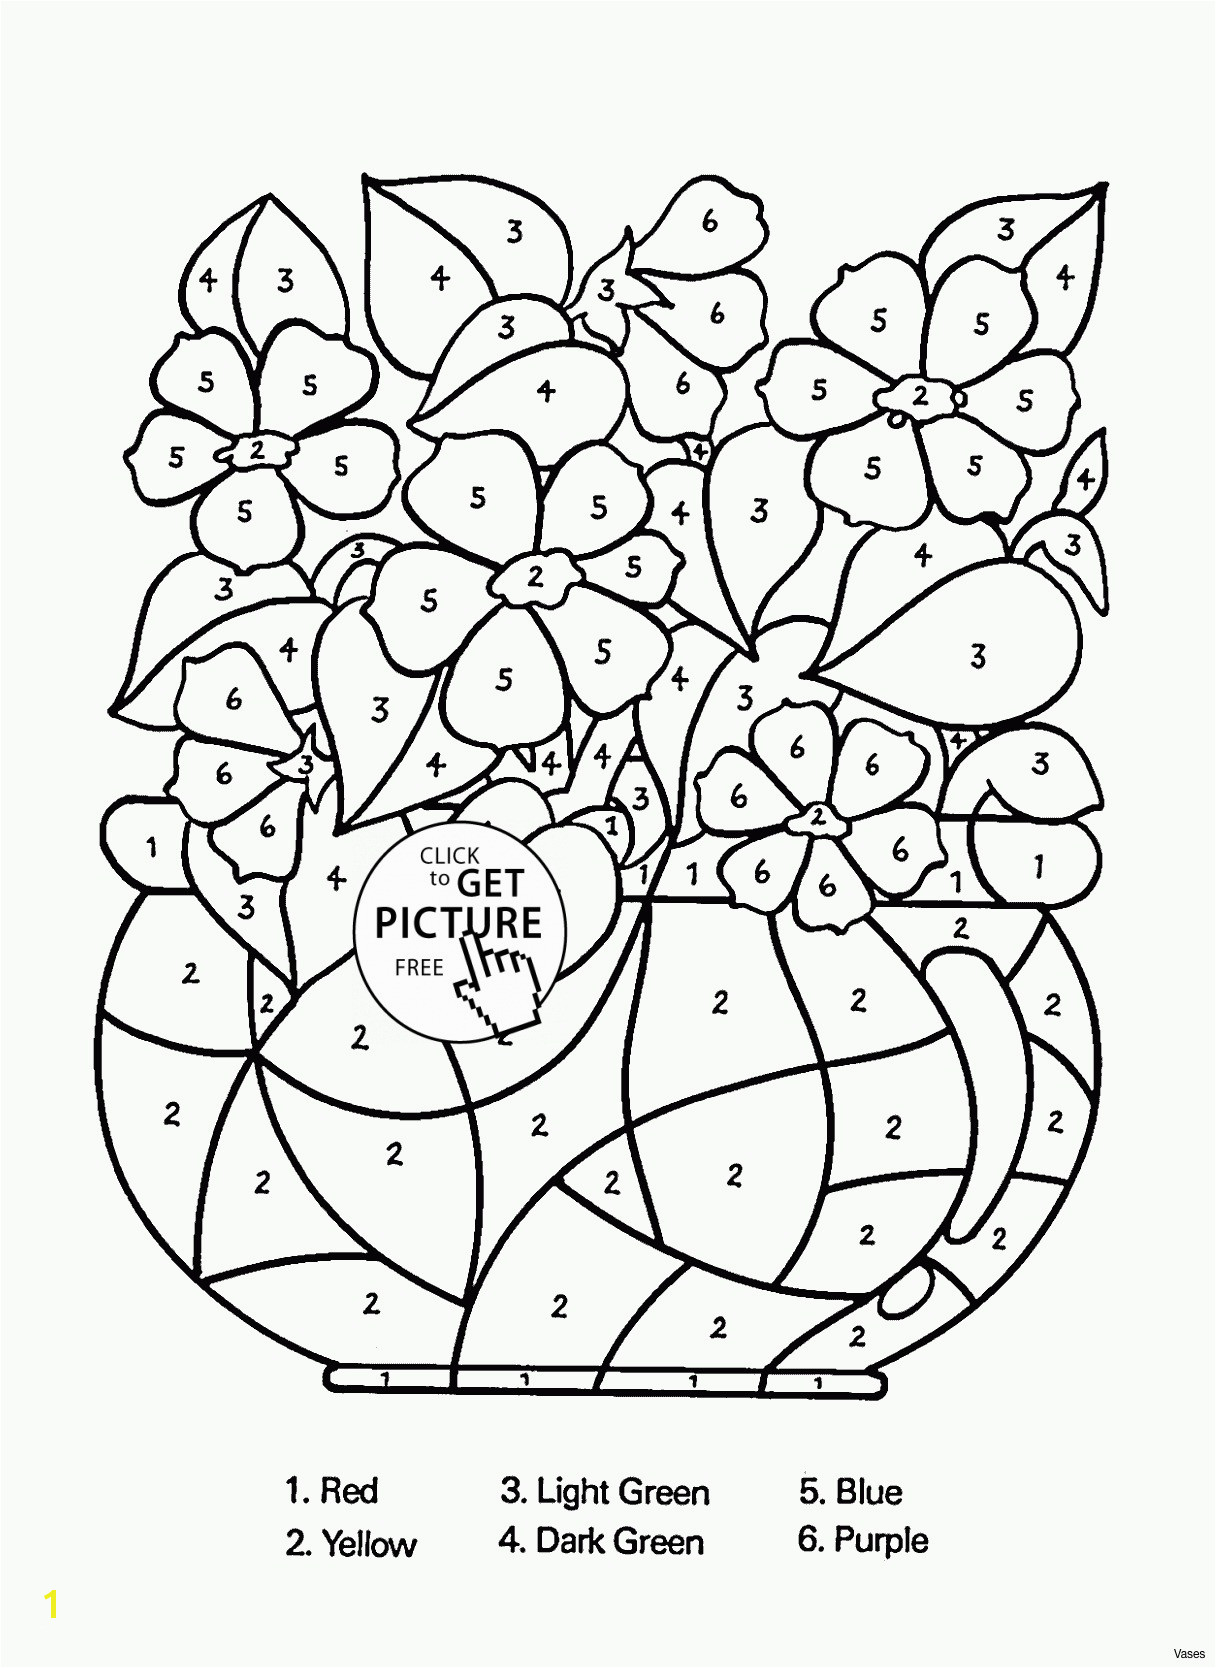 Printable Coloring Pages Of Squirrels Coloring Page Squirrel Coloring Pages Coloring Pages